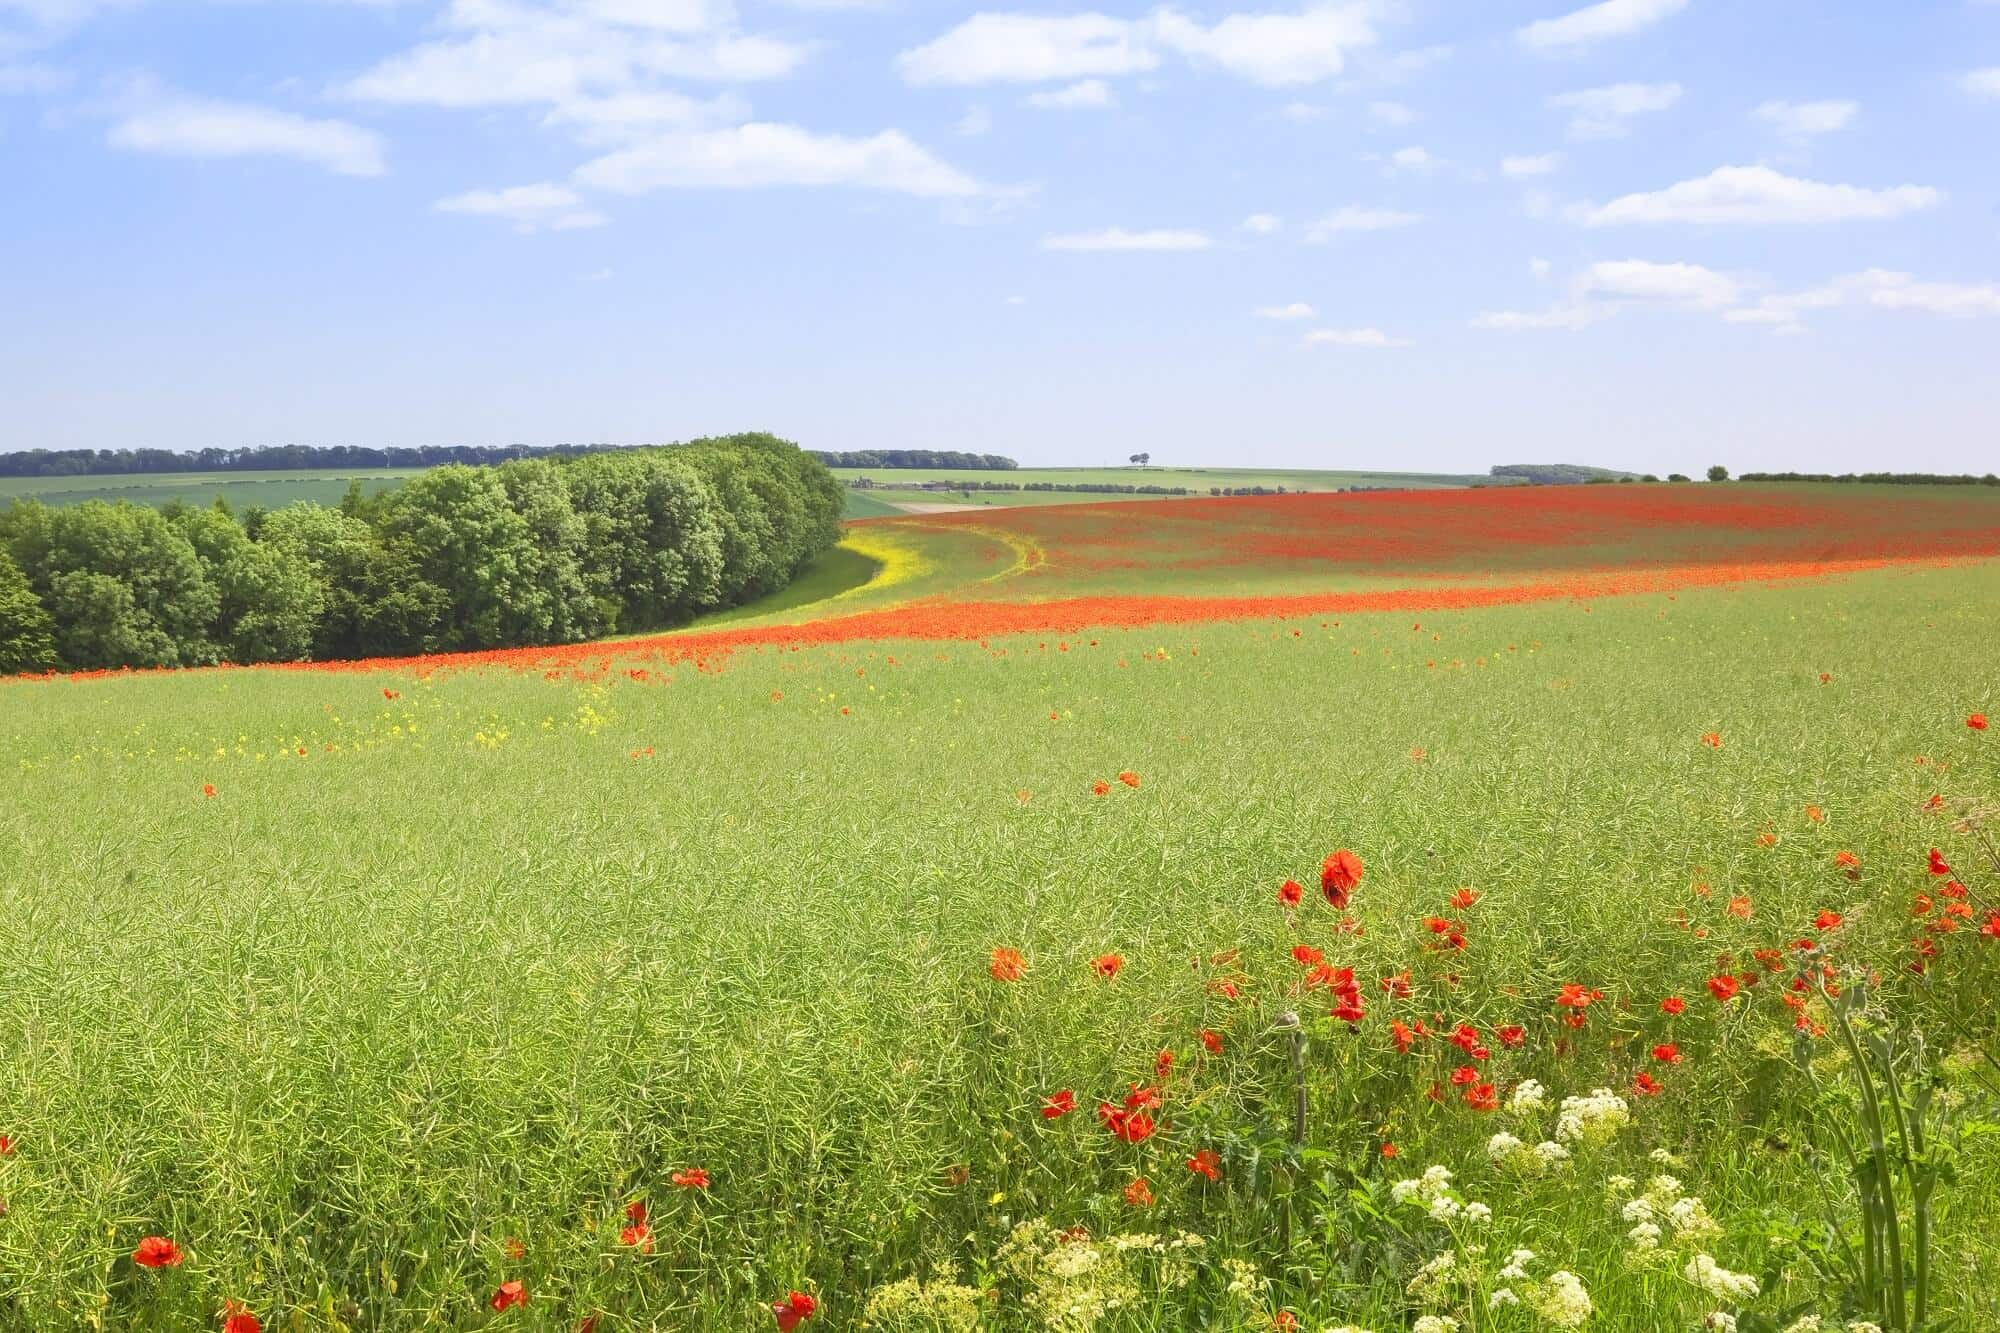 Wildflowers in the Yorkshire Wolds